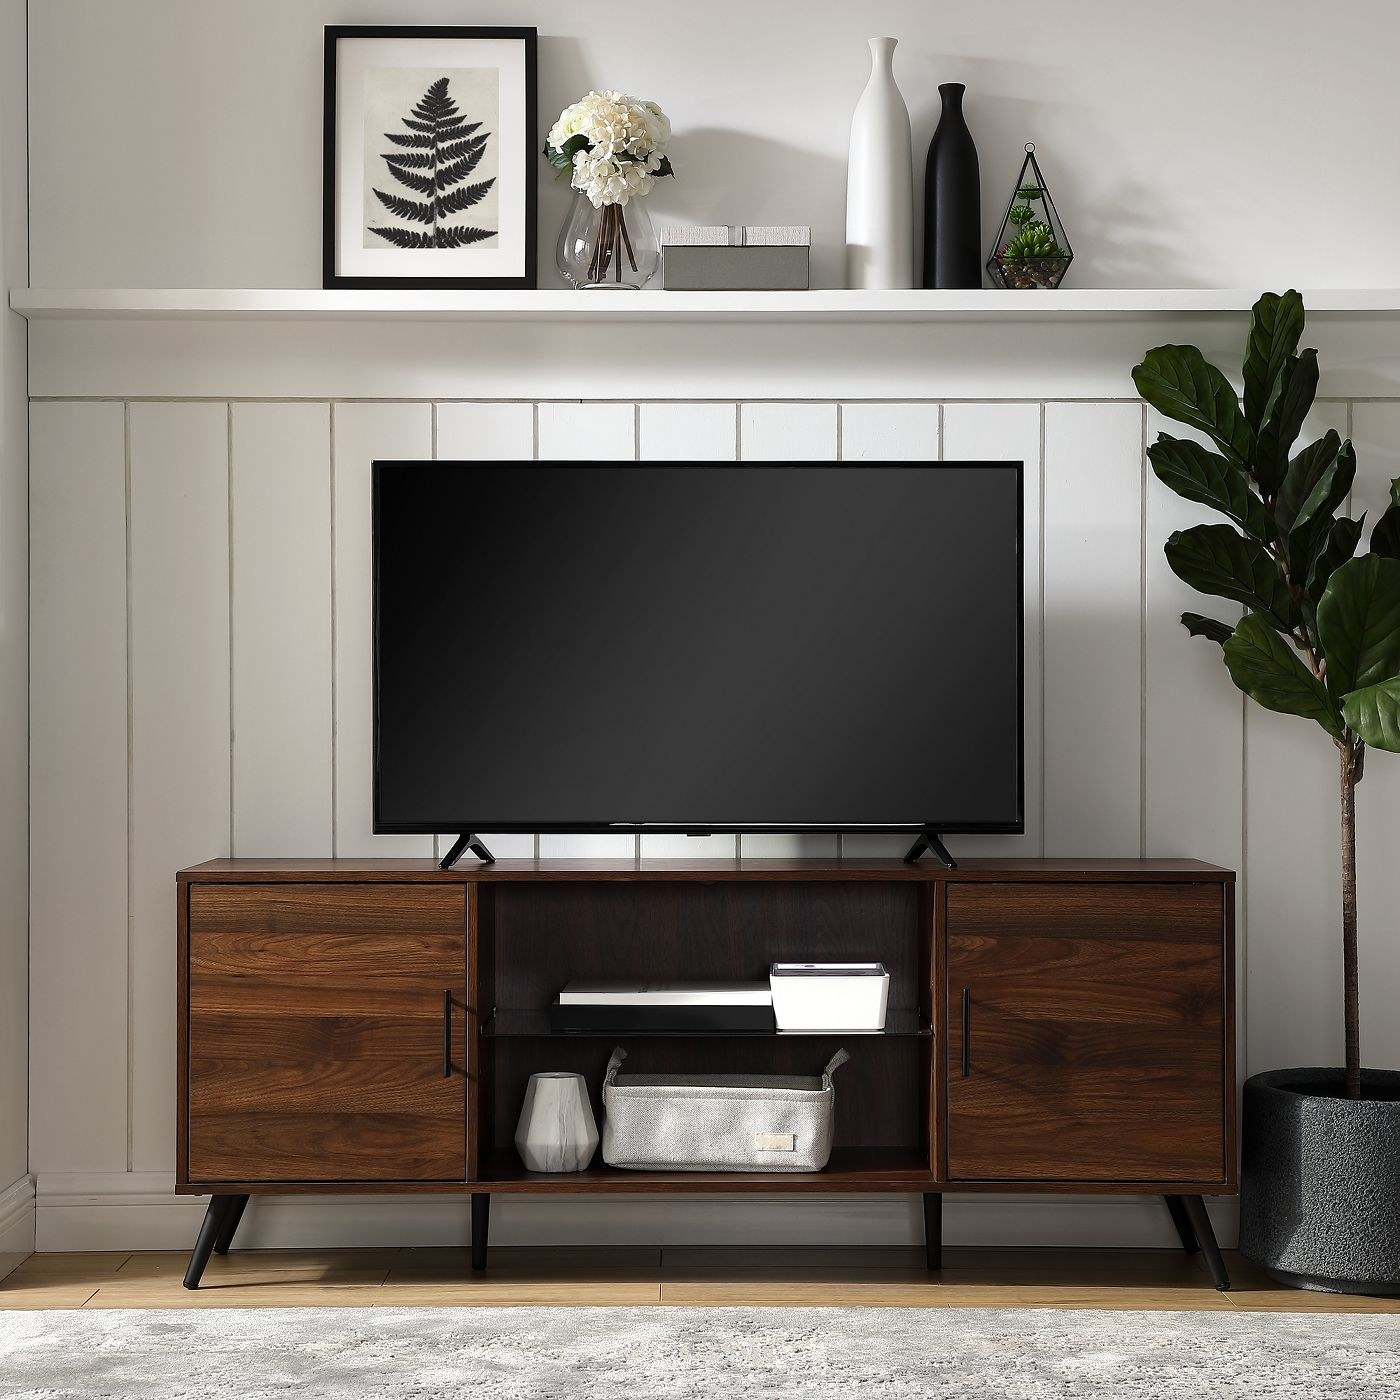 walnut colored media console with two size cabinets and shelves in the middle, with a TV on top